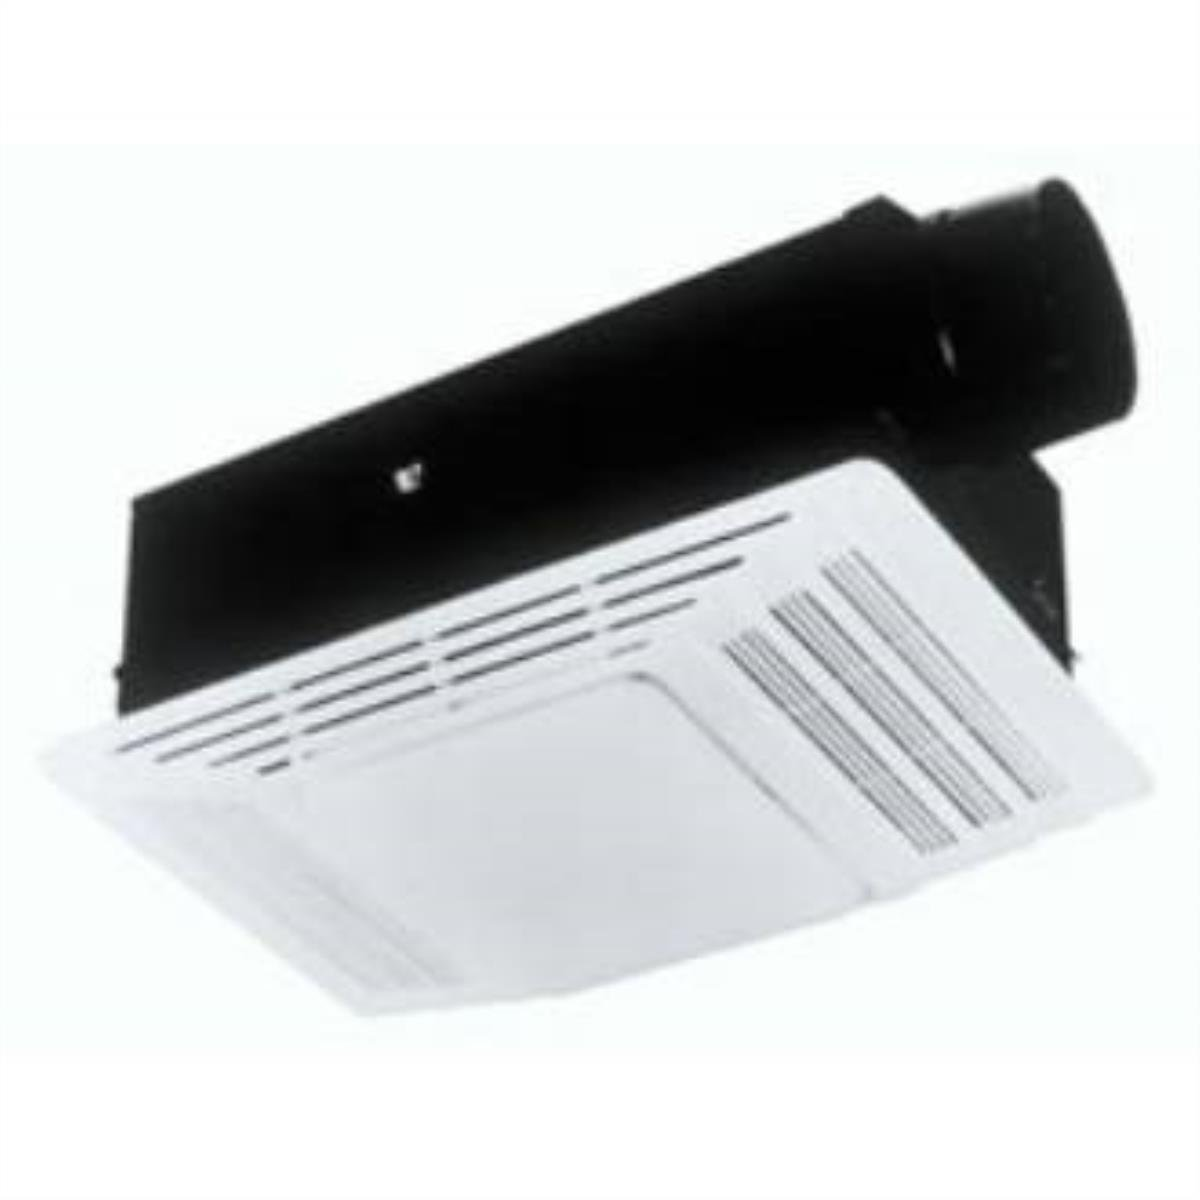 New broan 655 heater and heater bath fan with light for How to heat a bathroom